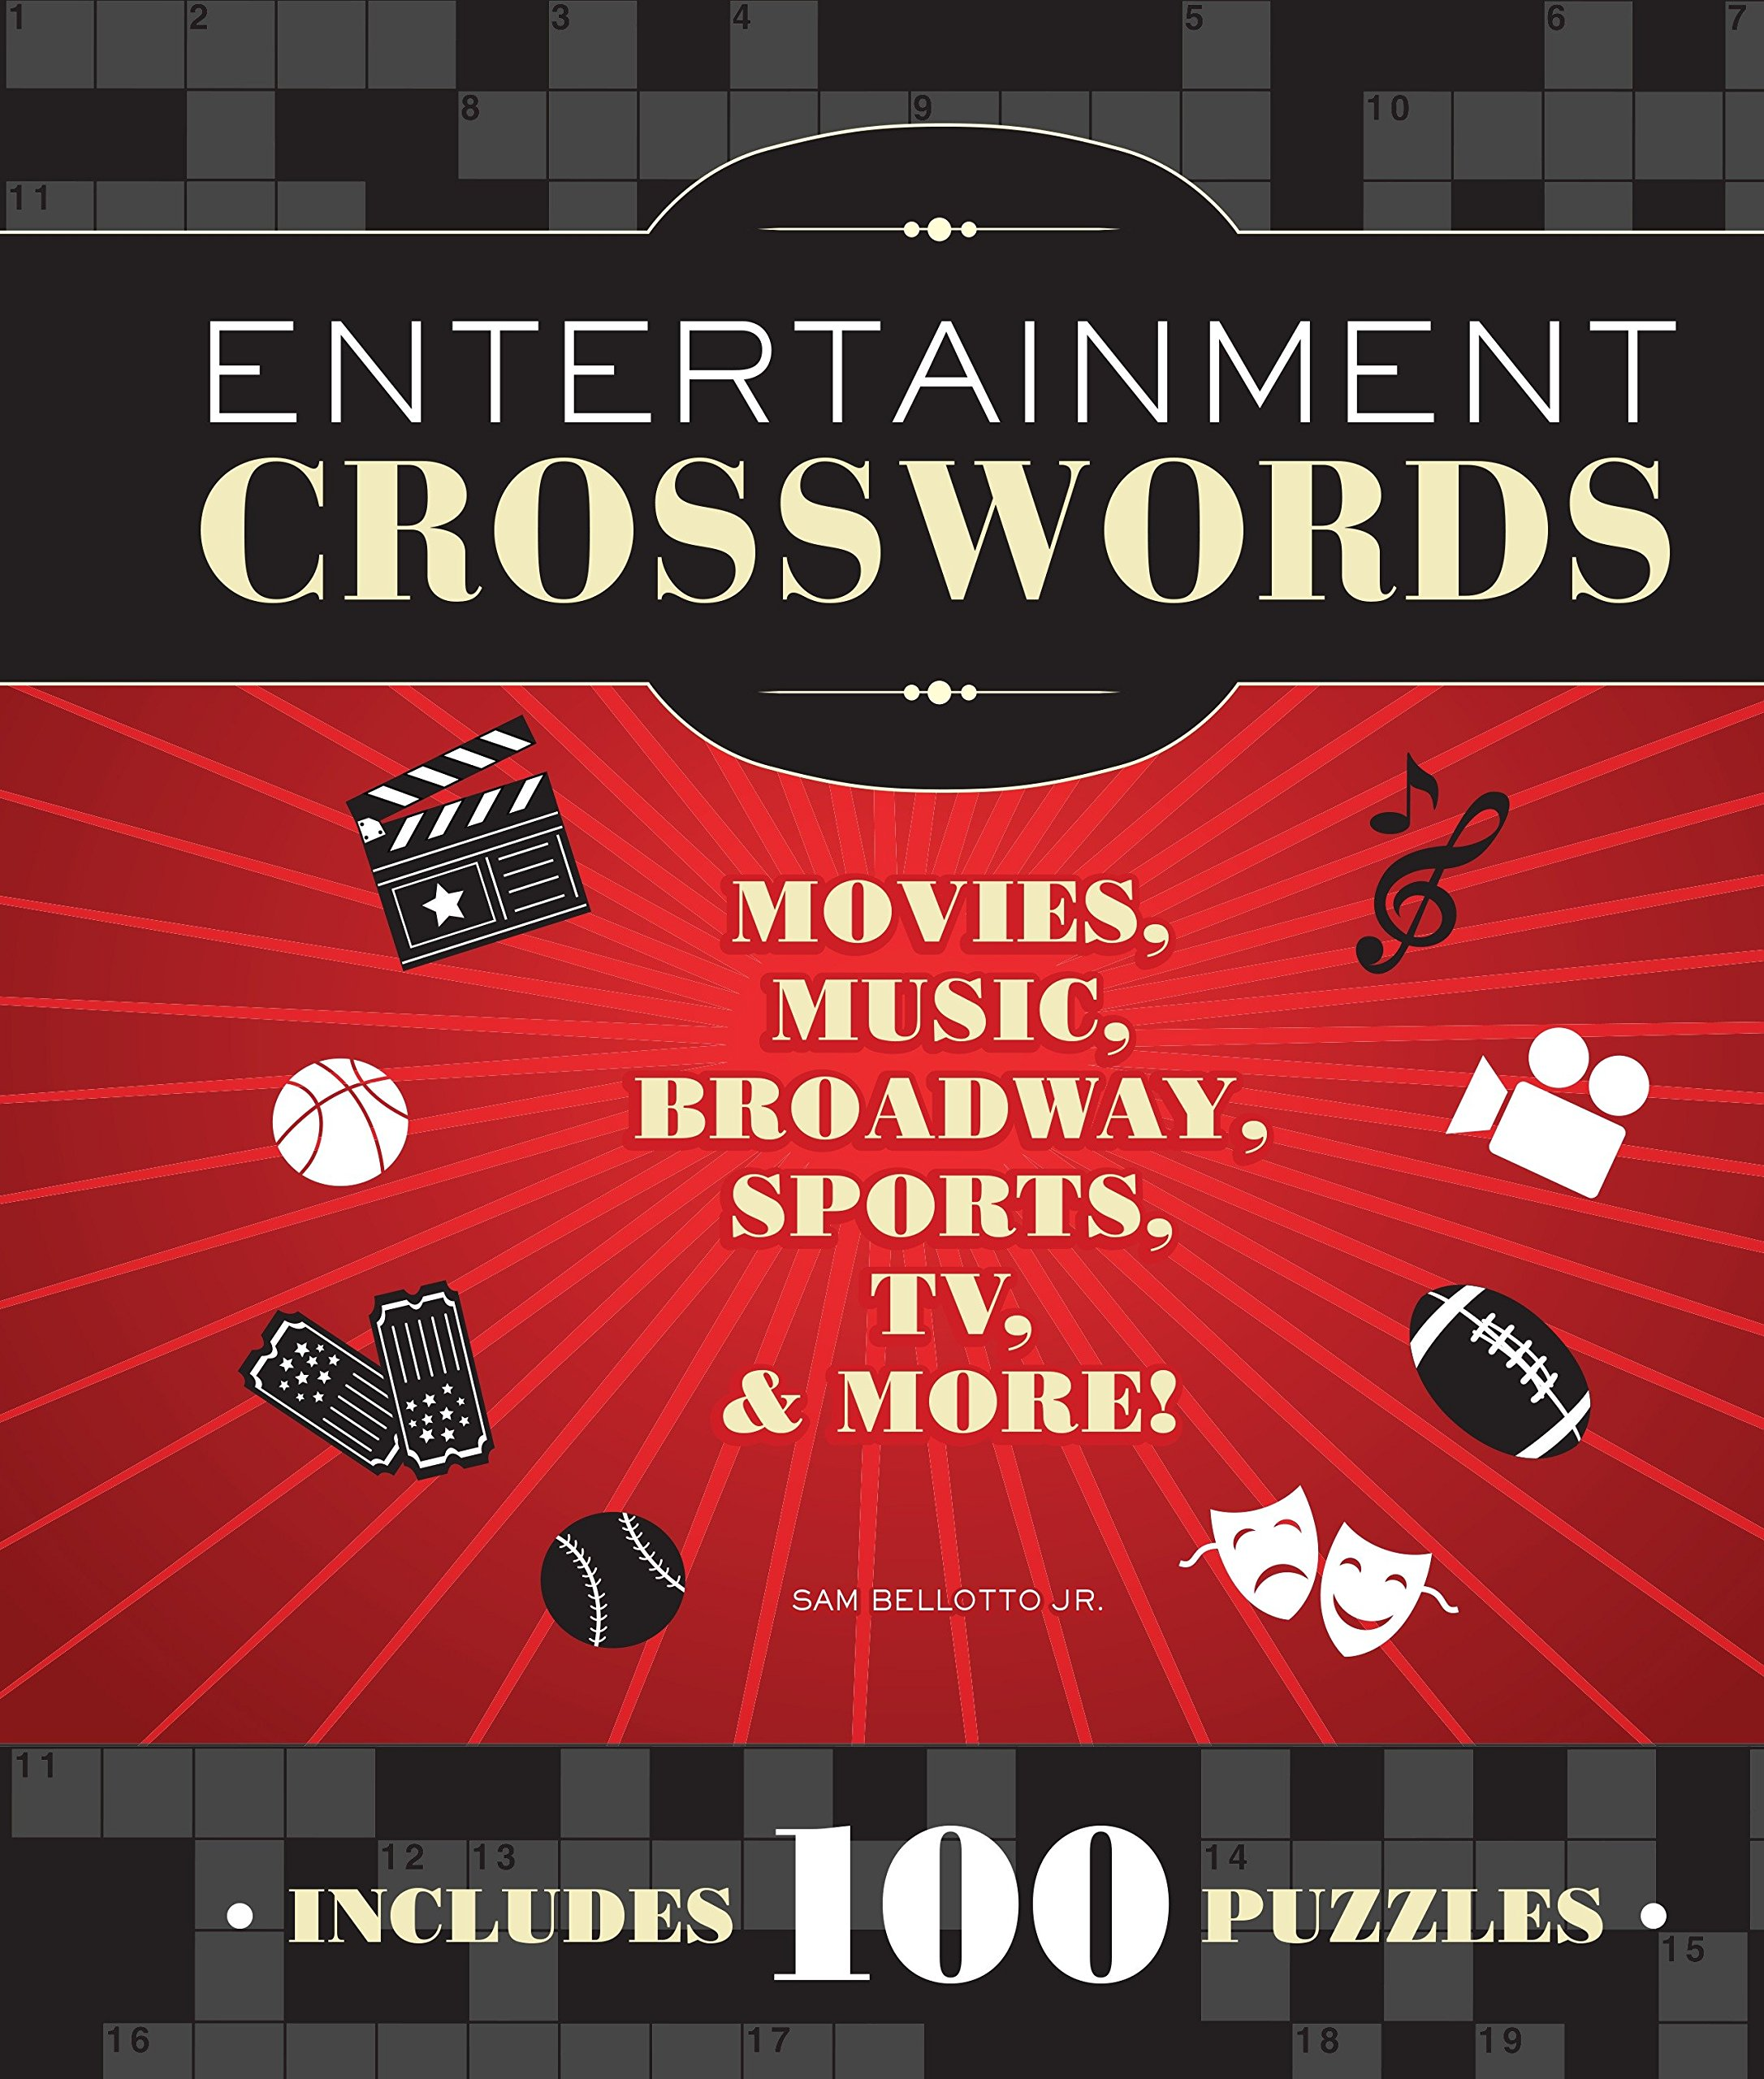 Entertainment Crosswords: Movies, Music, Broadway, Sports, TV & More Paperback – July 1, 2012 Sam Bellotto Jr. Imagine 1936140829 Games